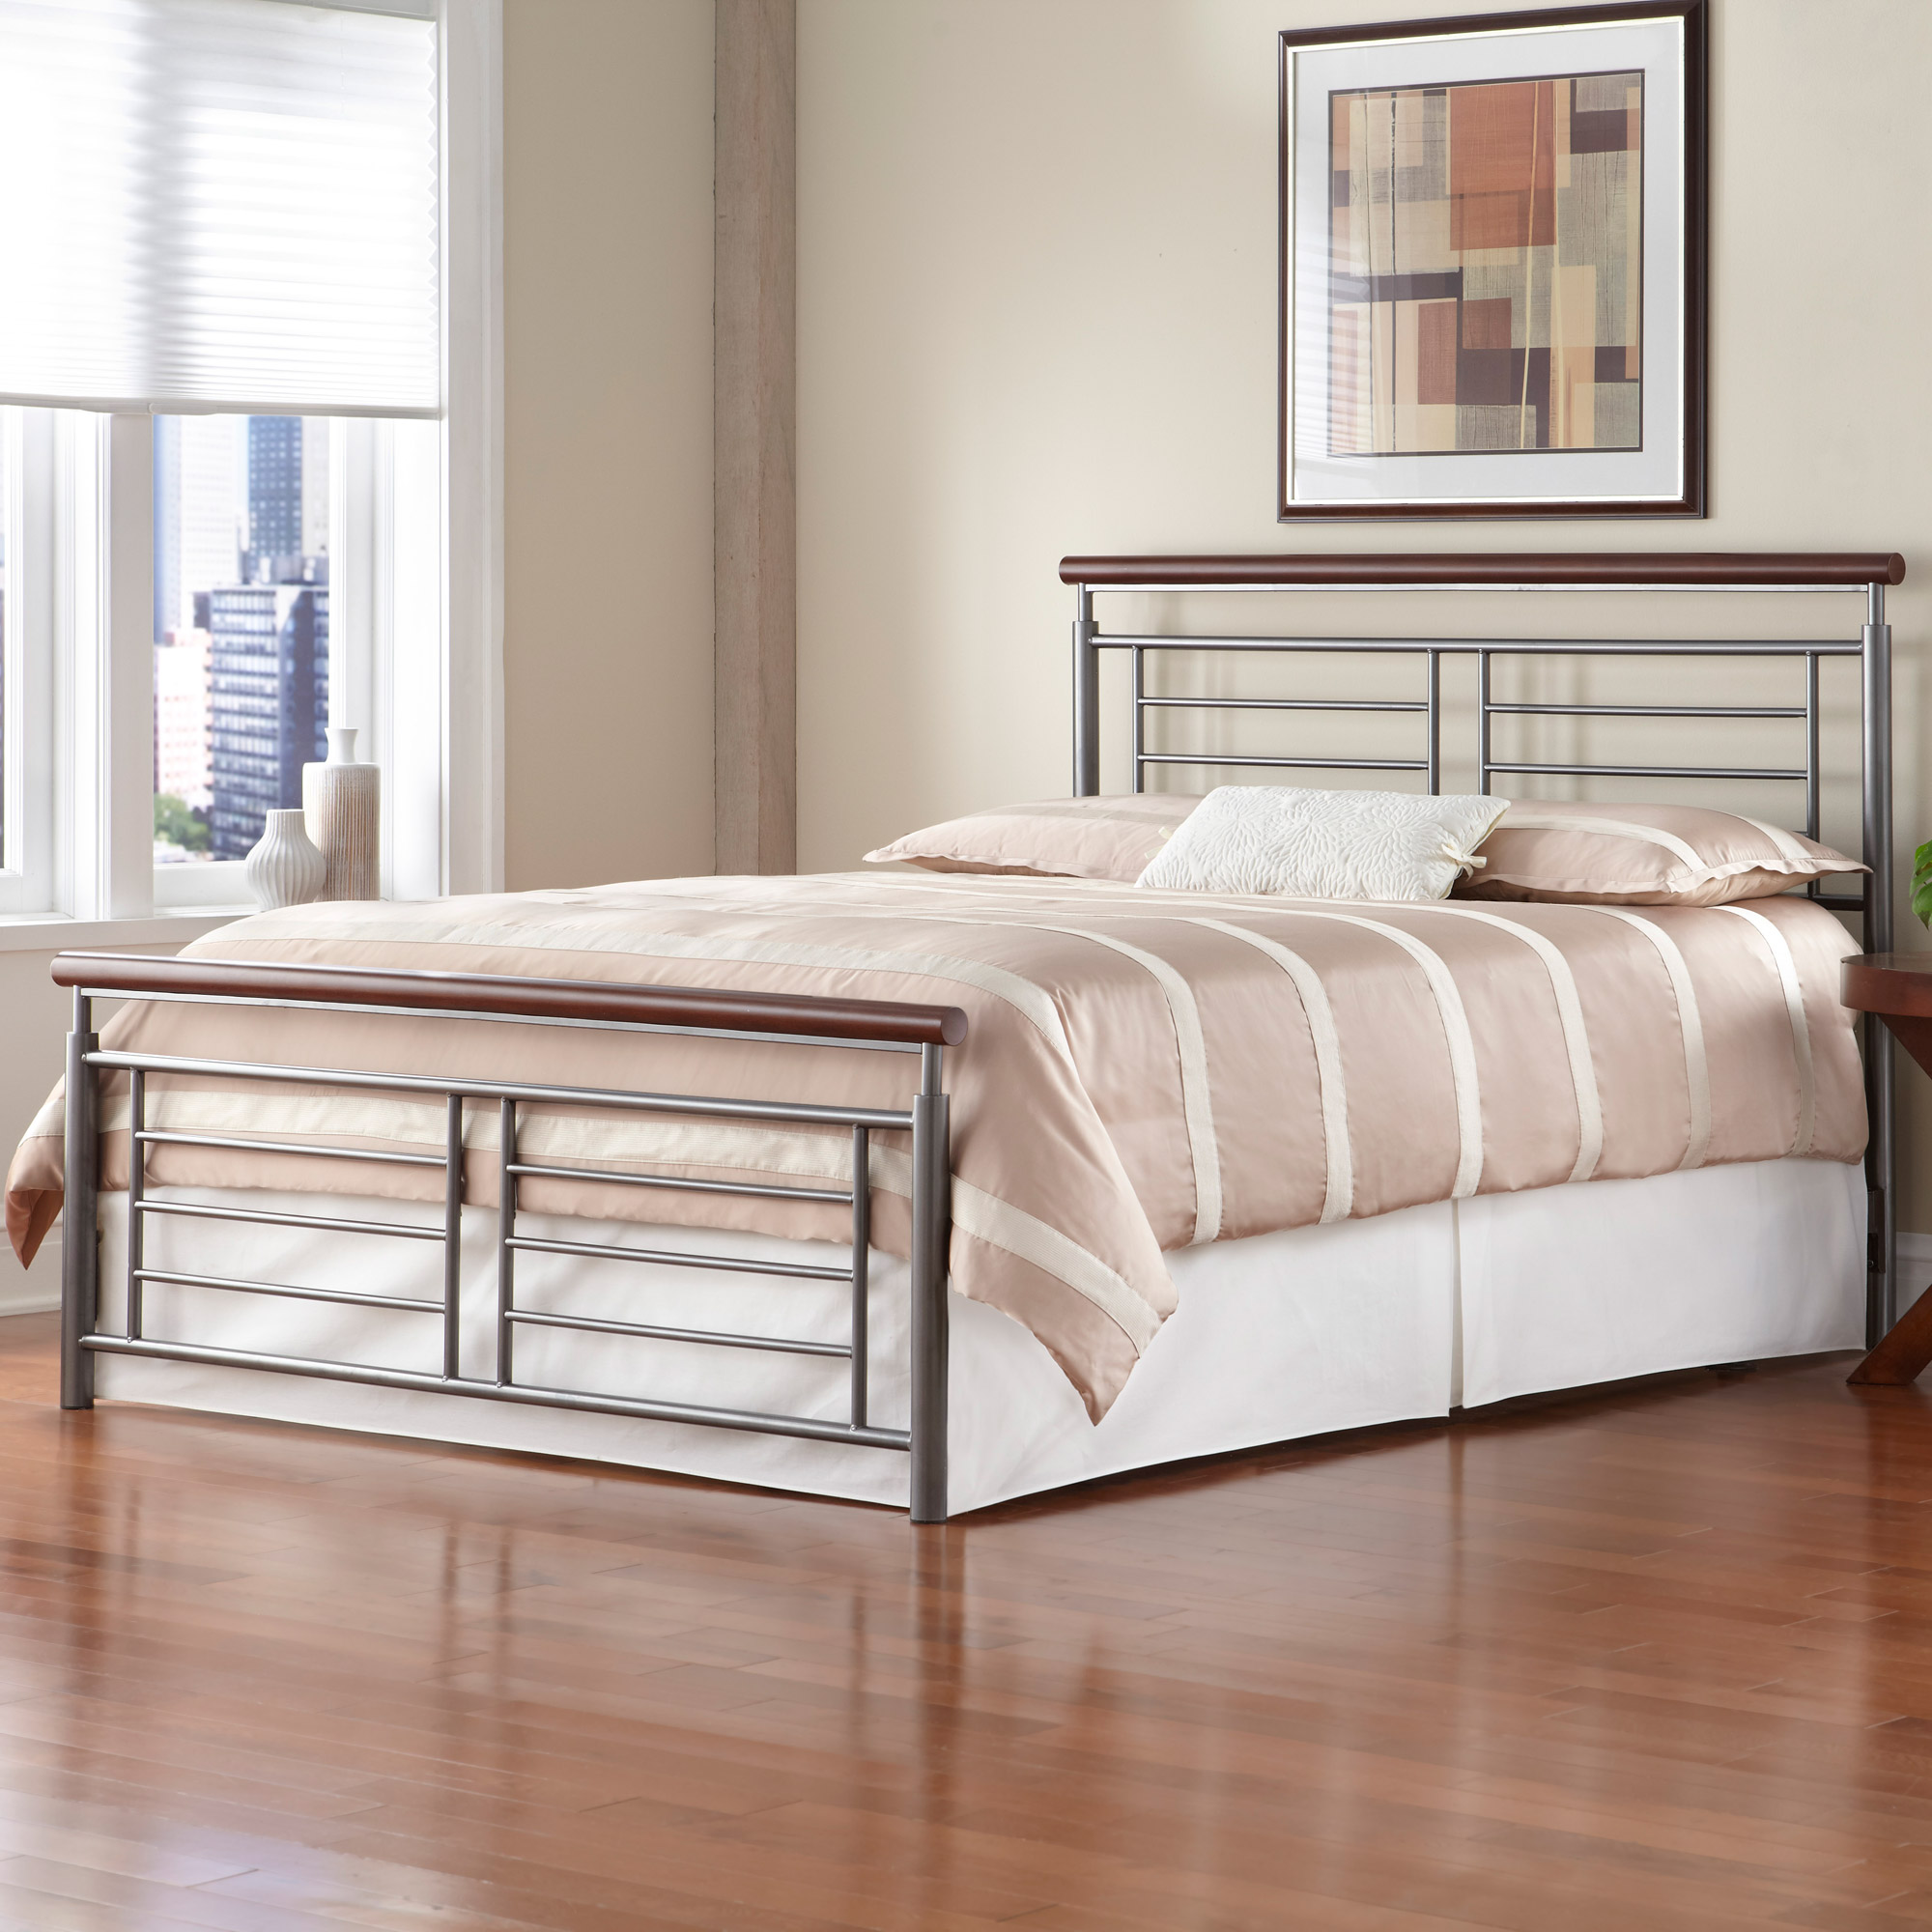 Metal Bed Headboard : Fontane Iron Bed Silver/Cherry Metal Contemporary Design